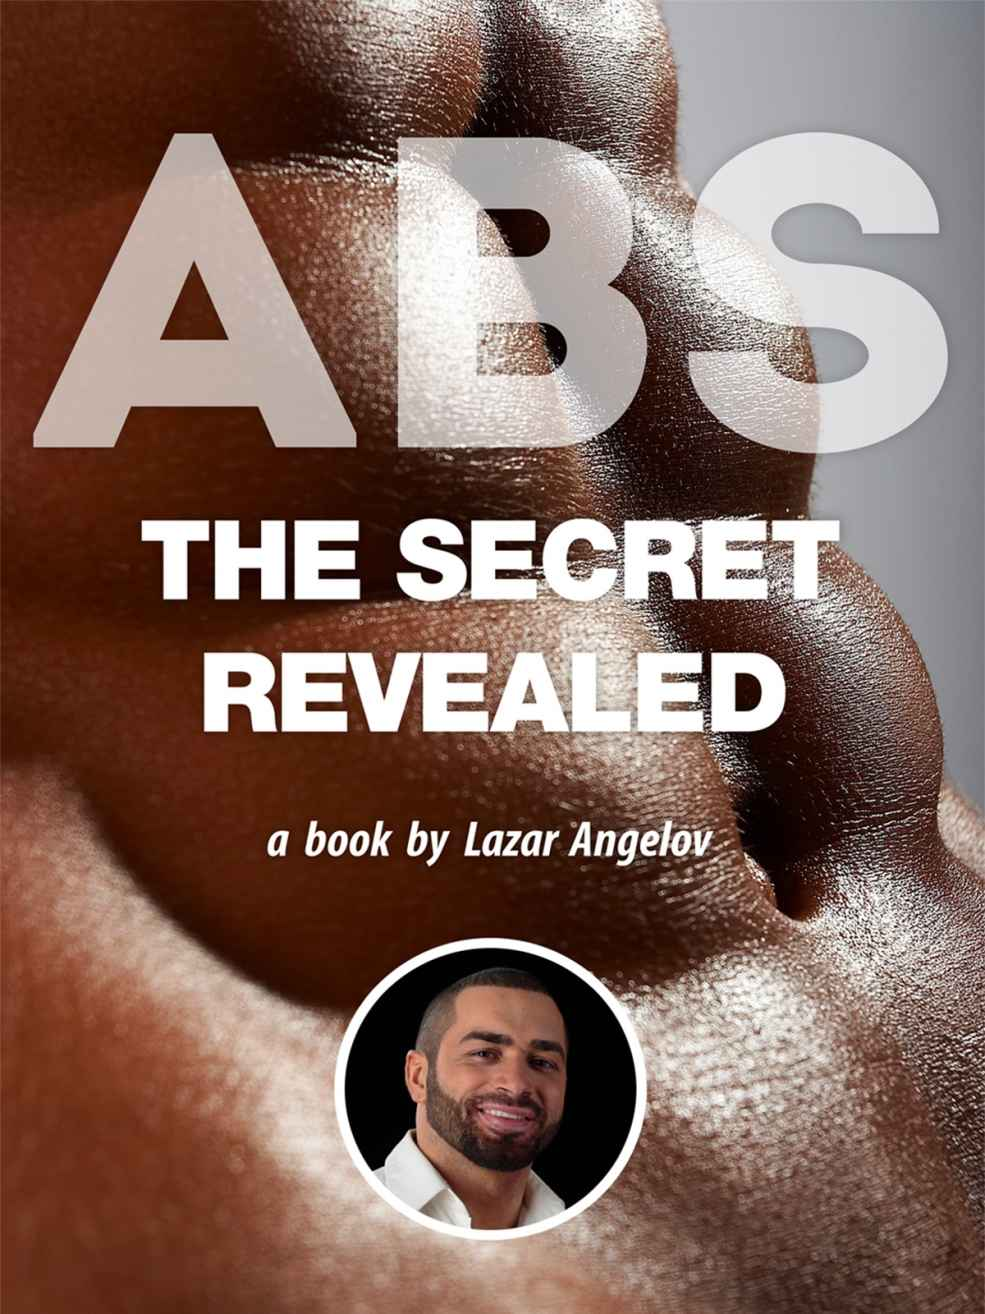 """""""ABS: The Secret Revealed"""" a Book by Lazar Angelov: Complete Abs Training Workout - The Six-Pack Bible for Bodybuilding: Get Lean & Stay Healthy, Abs Exercises & Fitness Book (Muscle Building) Kindle Edition"""